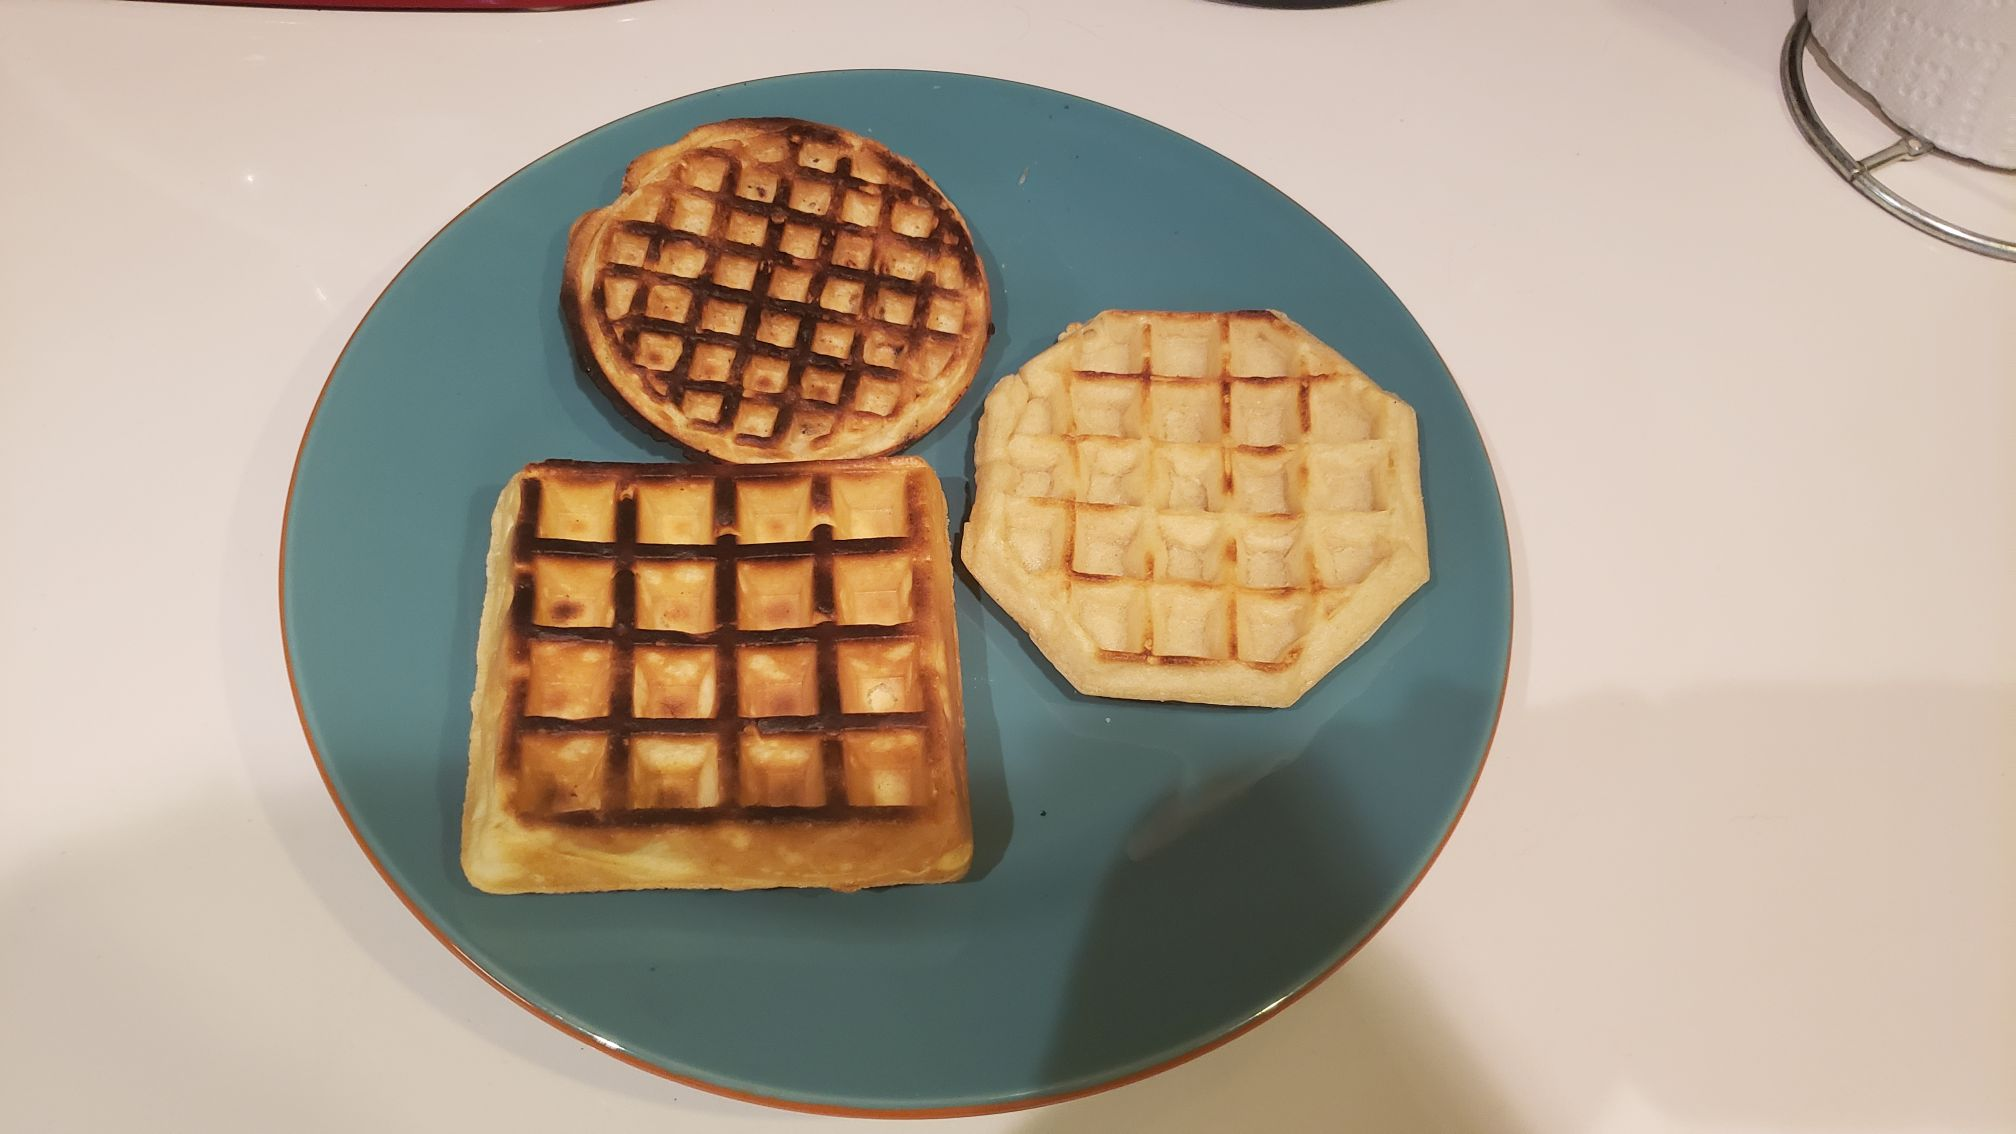 3 types of waffles on a plate, 2 of them are overcooked